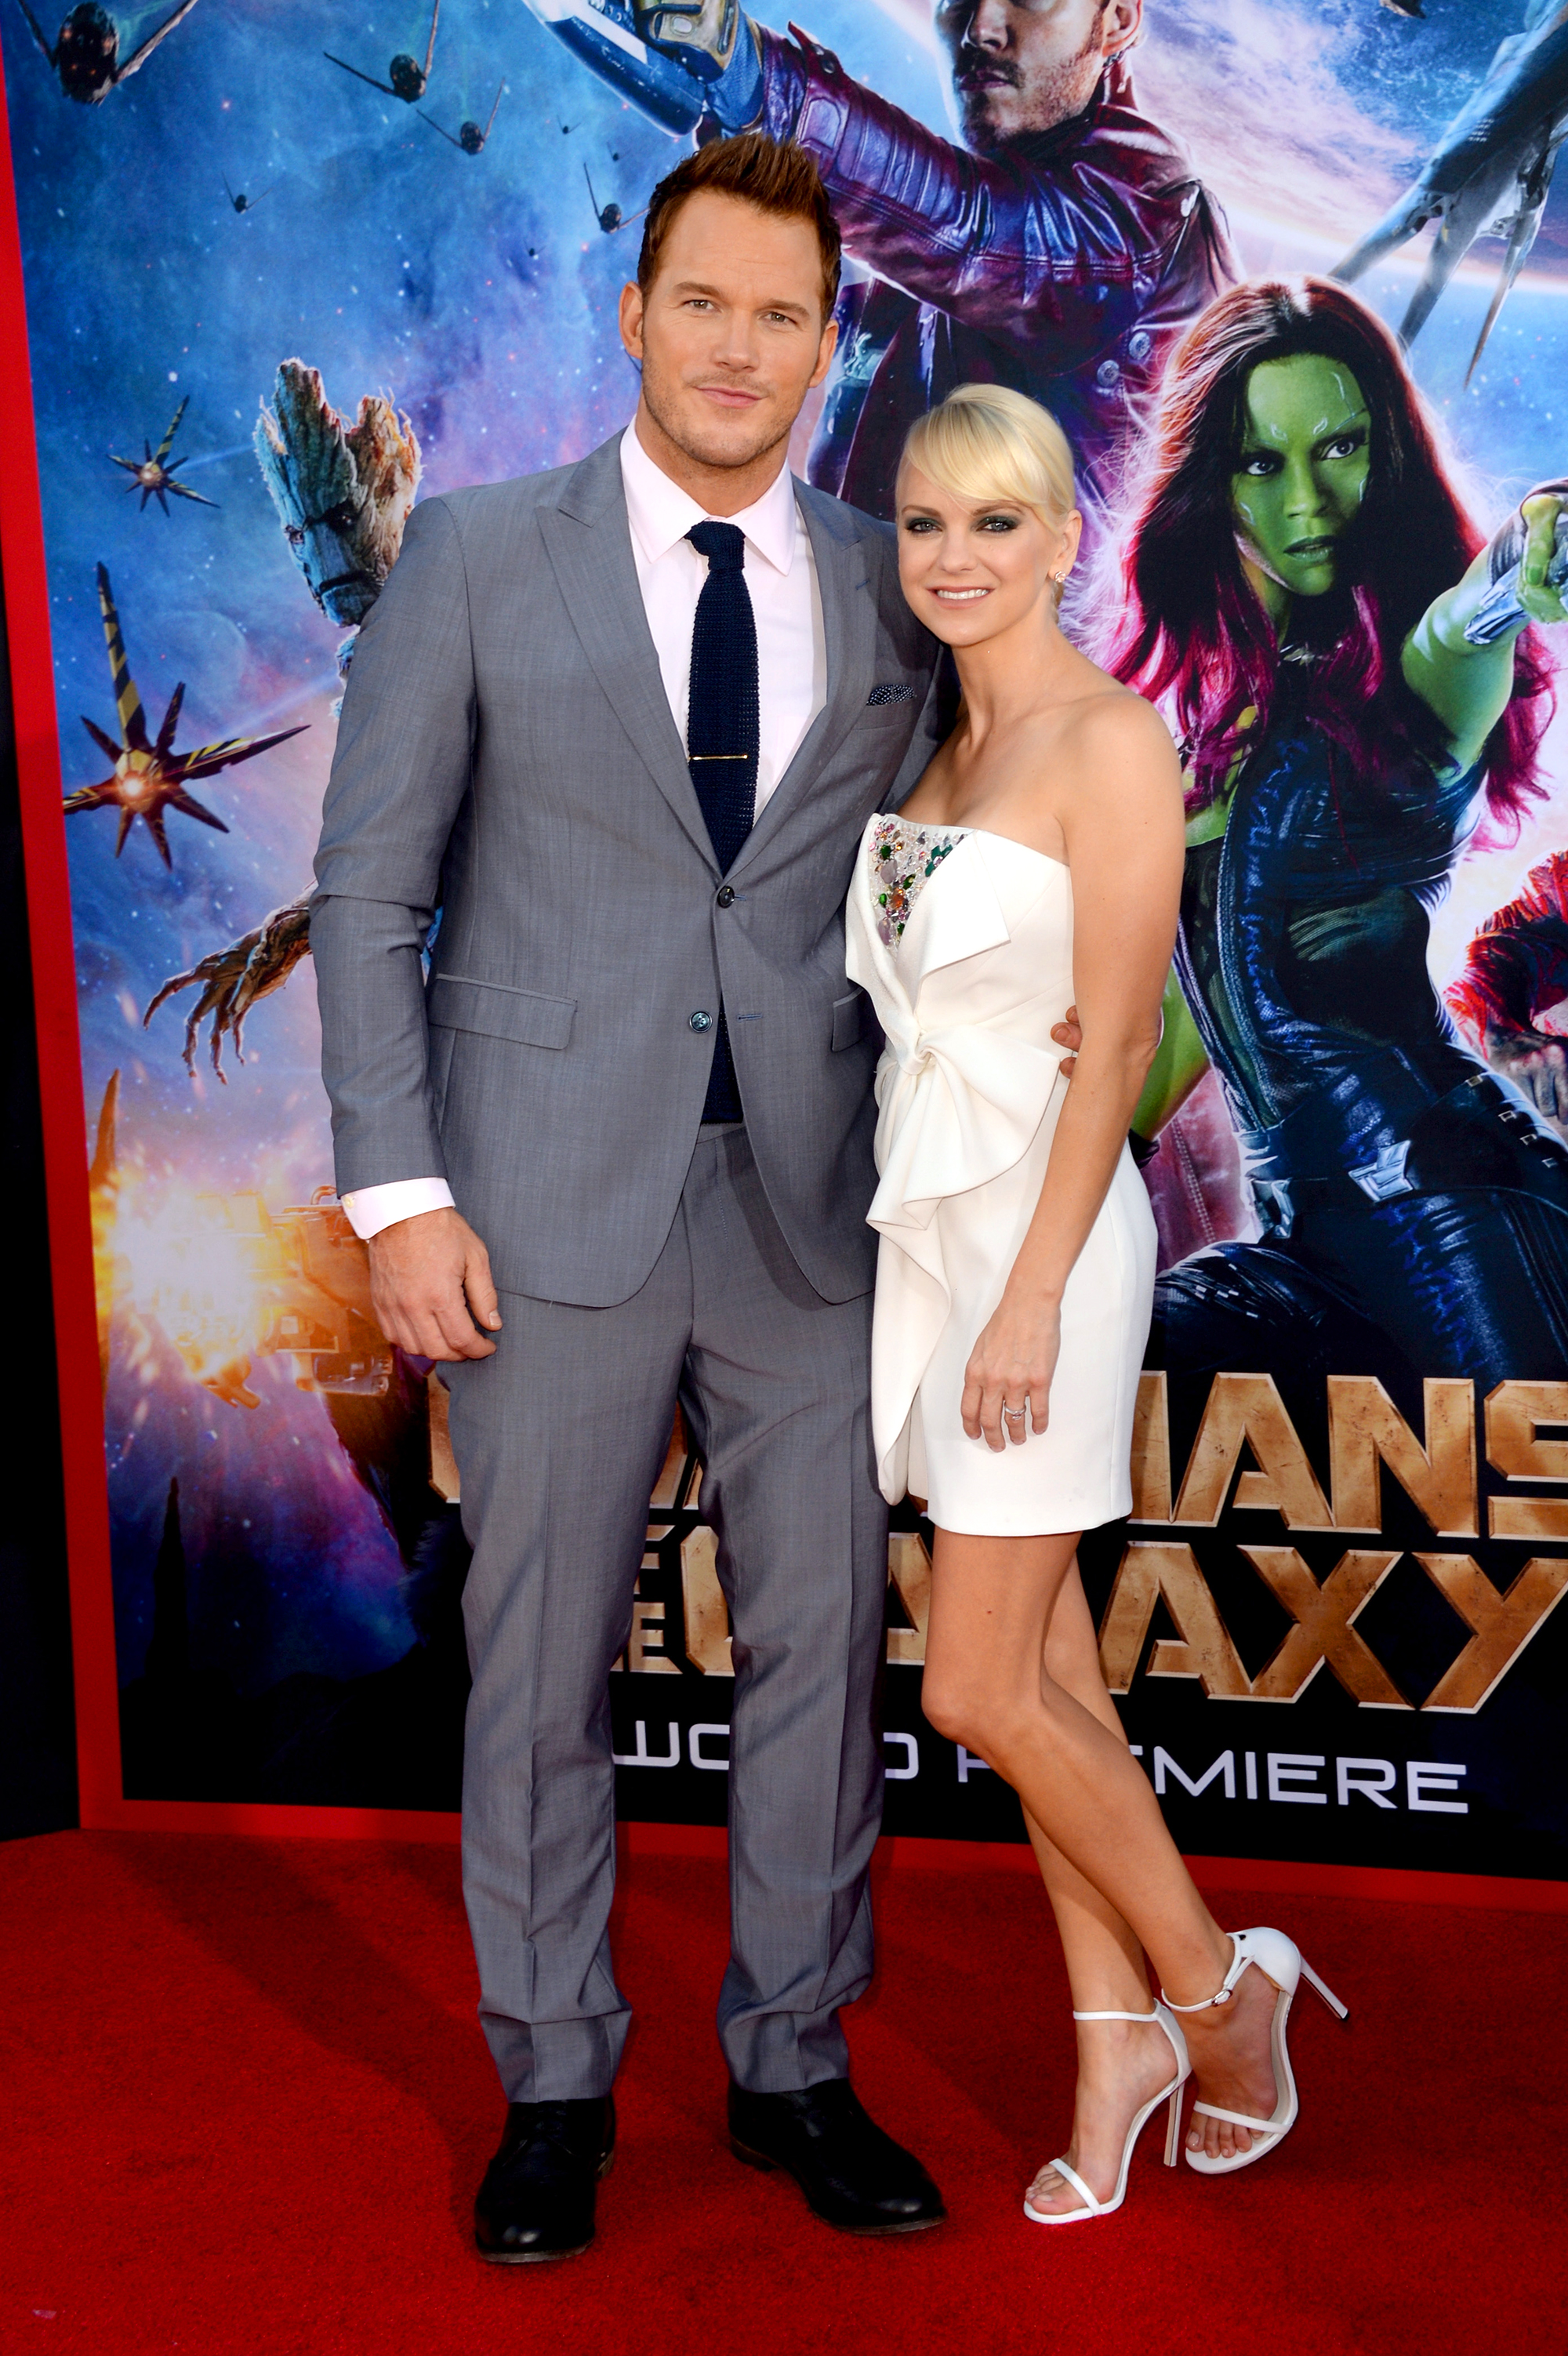 """Everything Chris Pratt and Anna Faris Have Said About Coparenting Their Son Jack - While the House Bunny actress and Jurassic World actor make coparenting look easy, Faris admitted in January 2019 that it's a constant effort . She explained on her """"Unqualified"""" podcast, """"Chris and I work really hard 'cause we have Jack ... that is sort of the long game idea. Making sure Jack is really happy ... makes us really happy."""""""